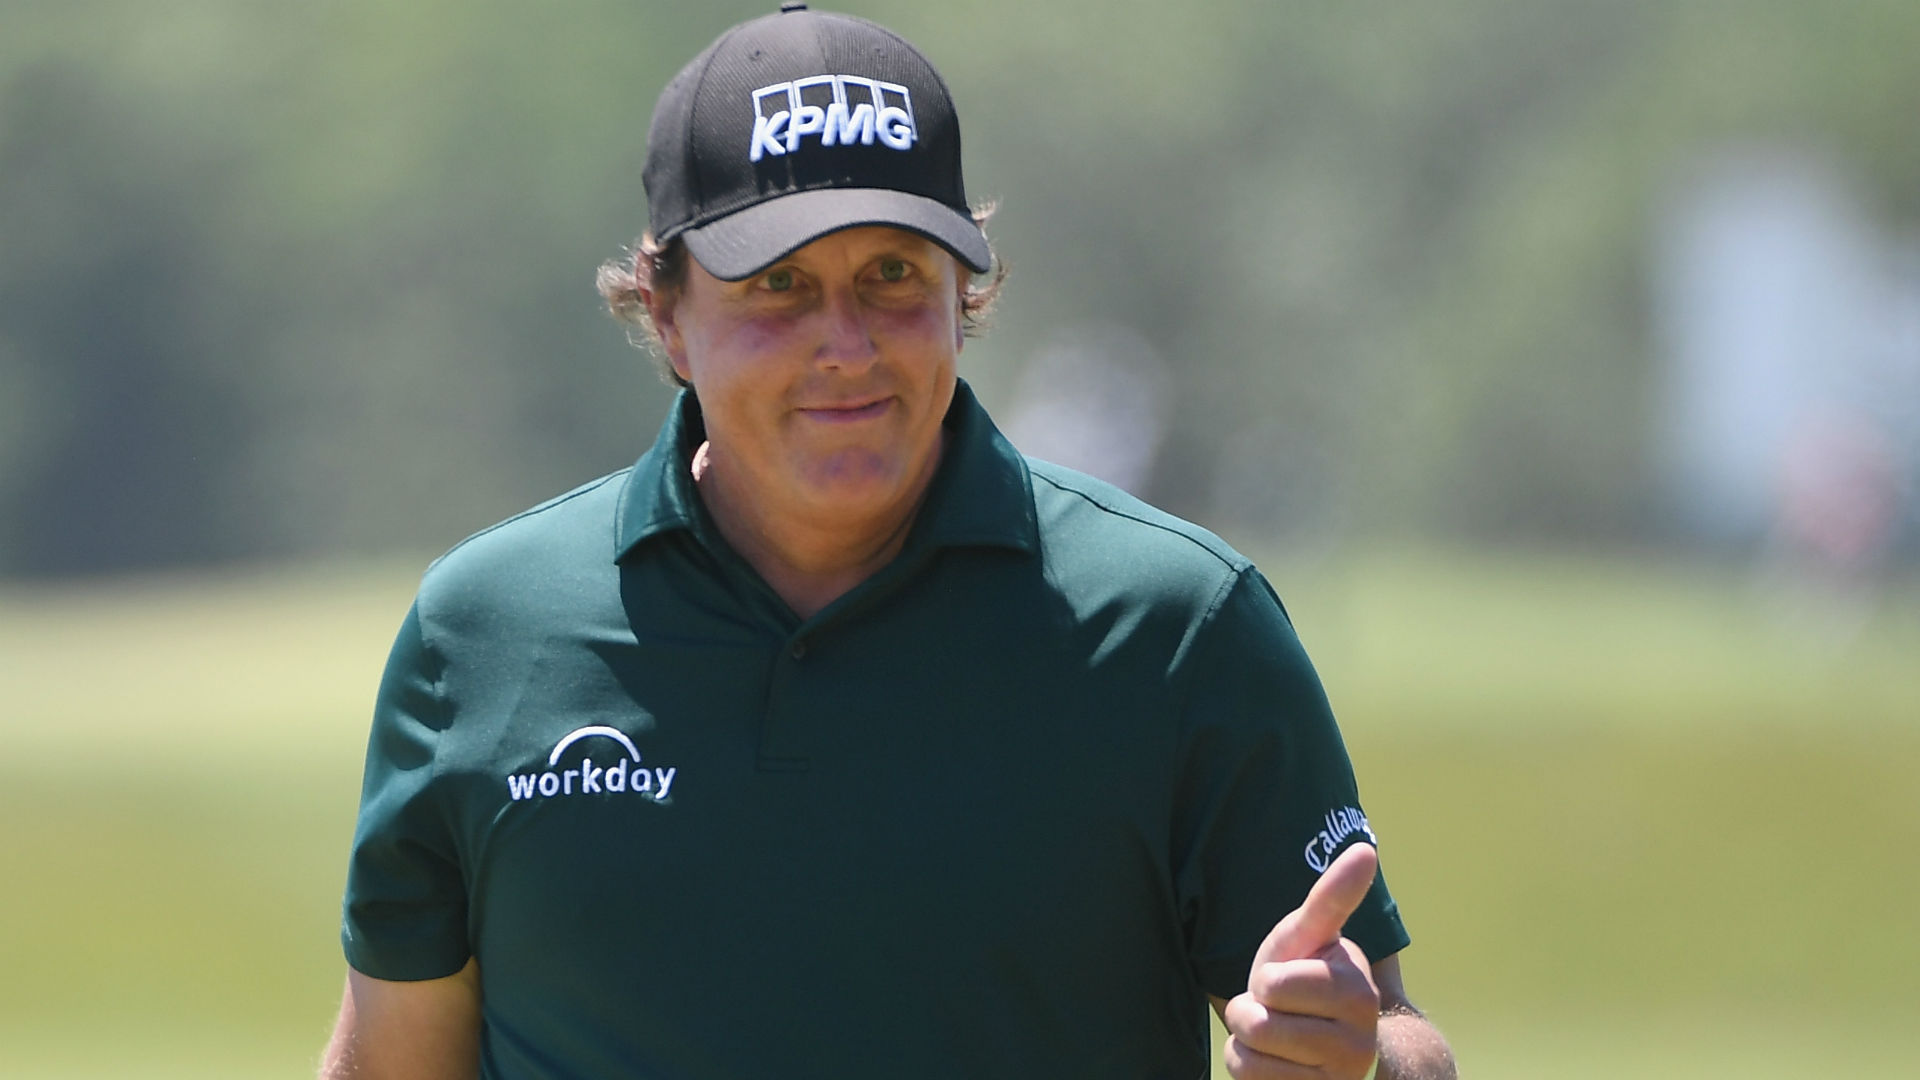 Ryder Cup 2018: Phil Mickelson shows off interesting training method